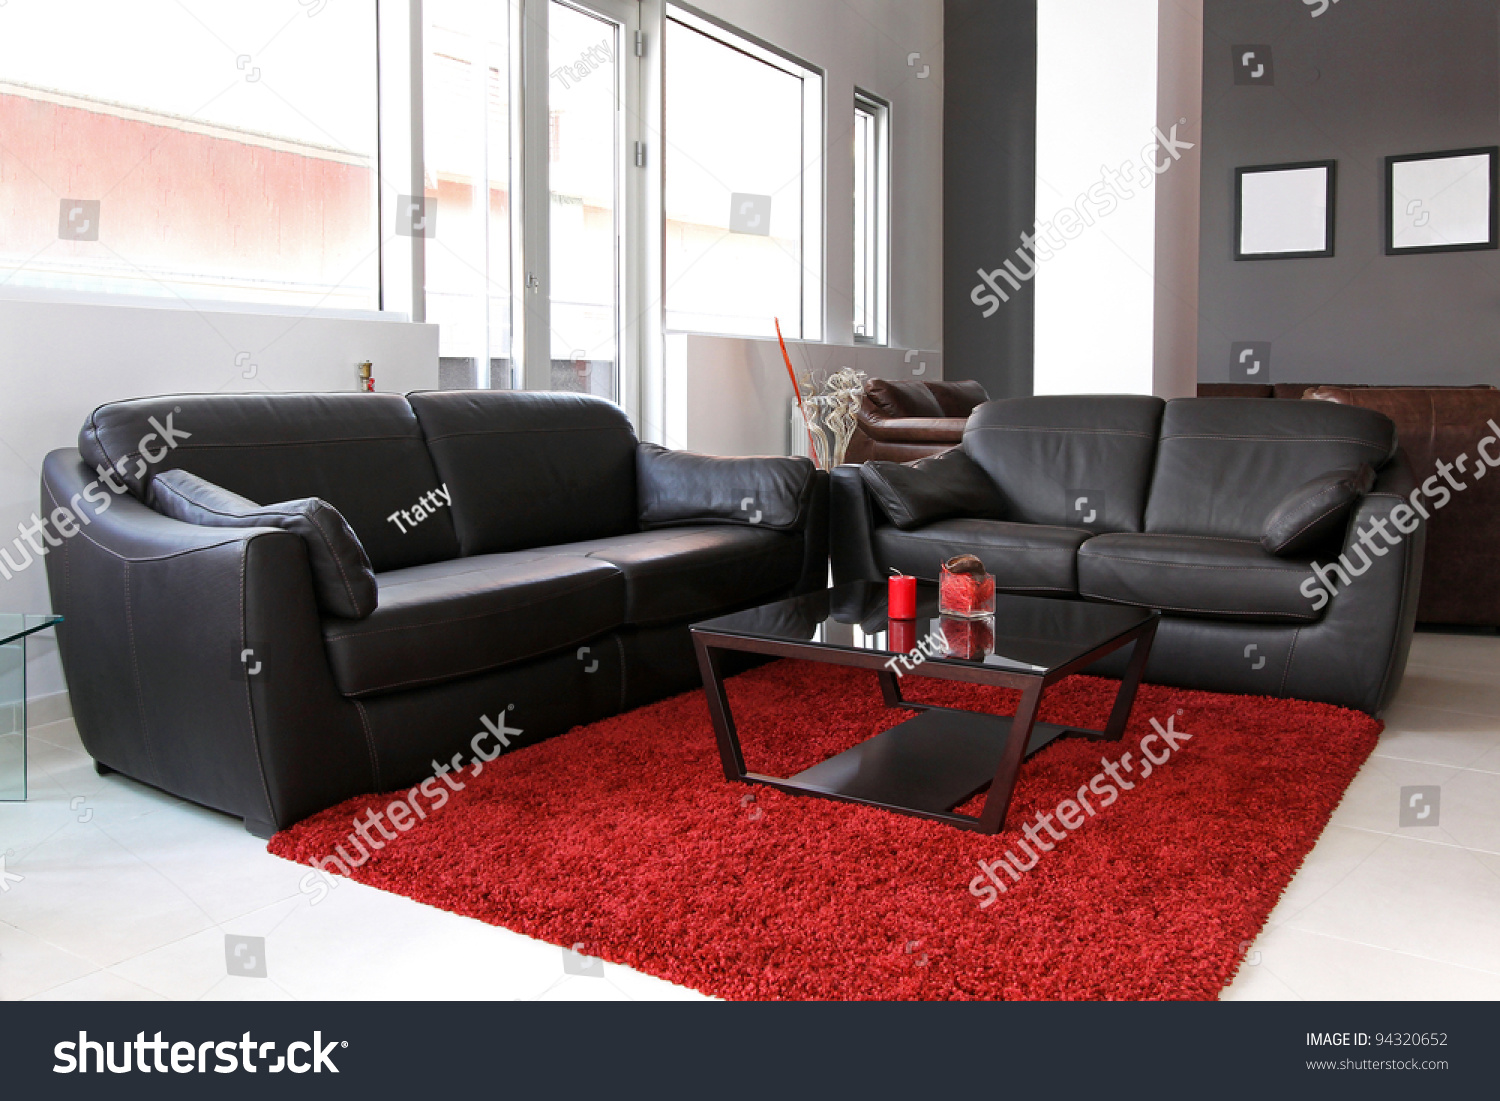 small living room interior with leather furniture stock photo 94320652